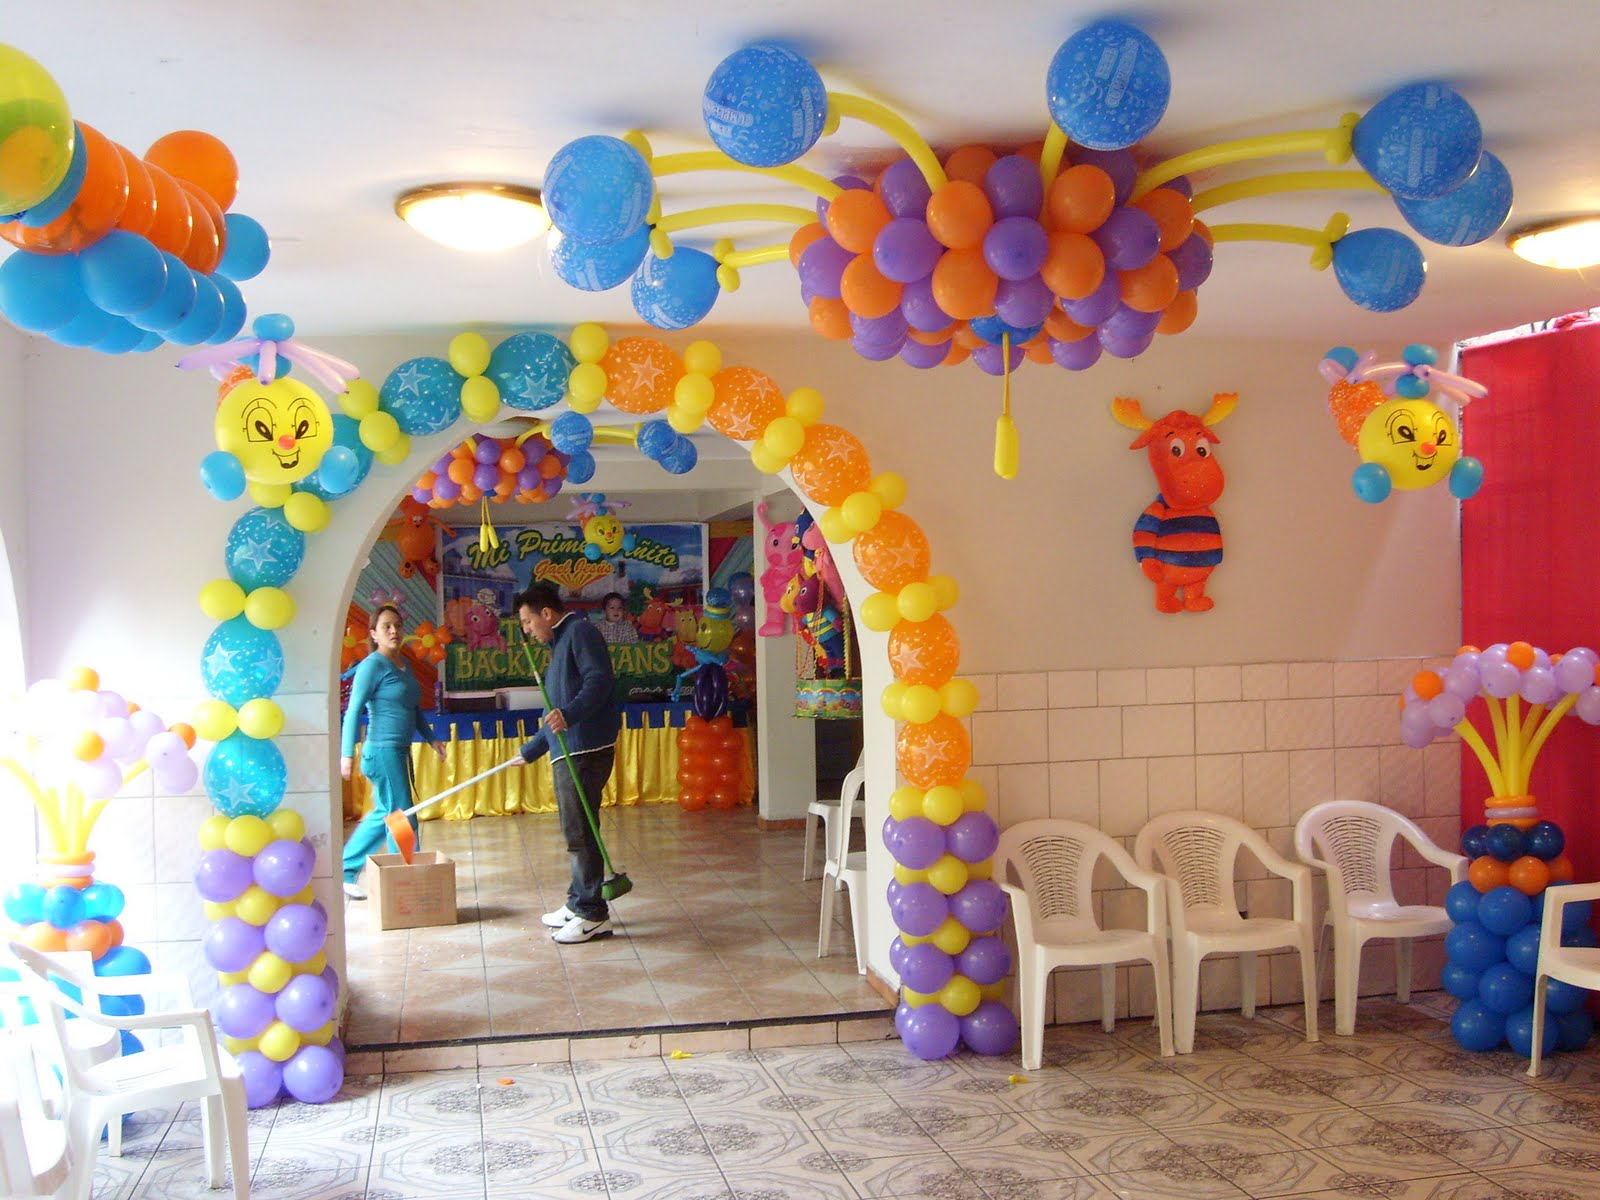 Globos katty decoraci n de backyardigans - Decoracion para foto ...